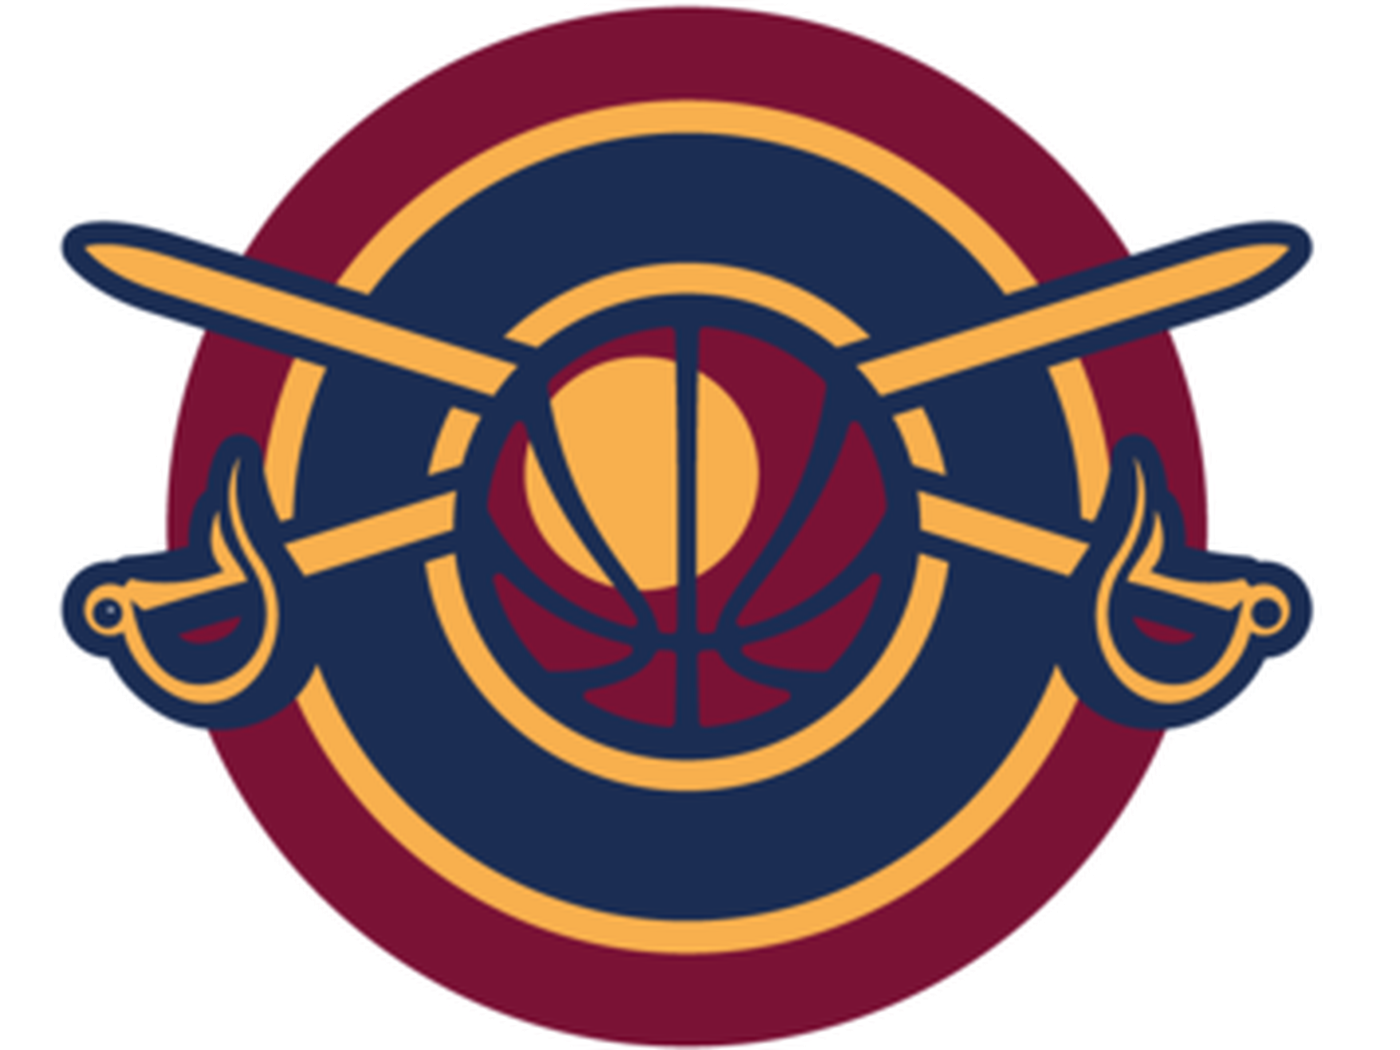 Cavaliers Update Their Logo, Colors - Fear The Sword